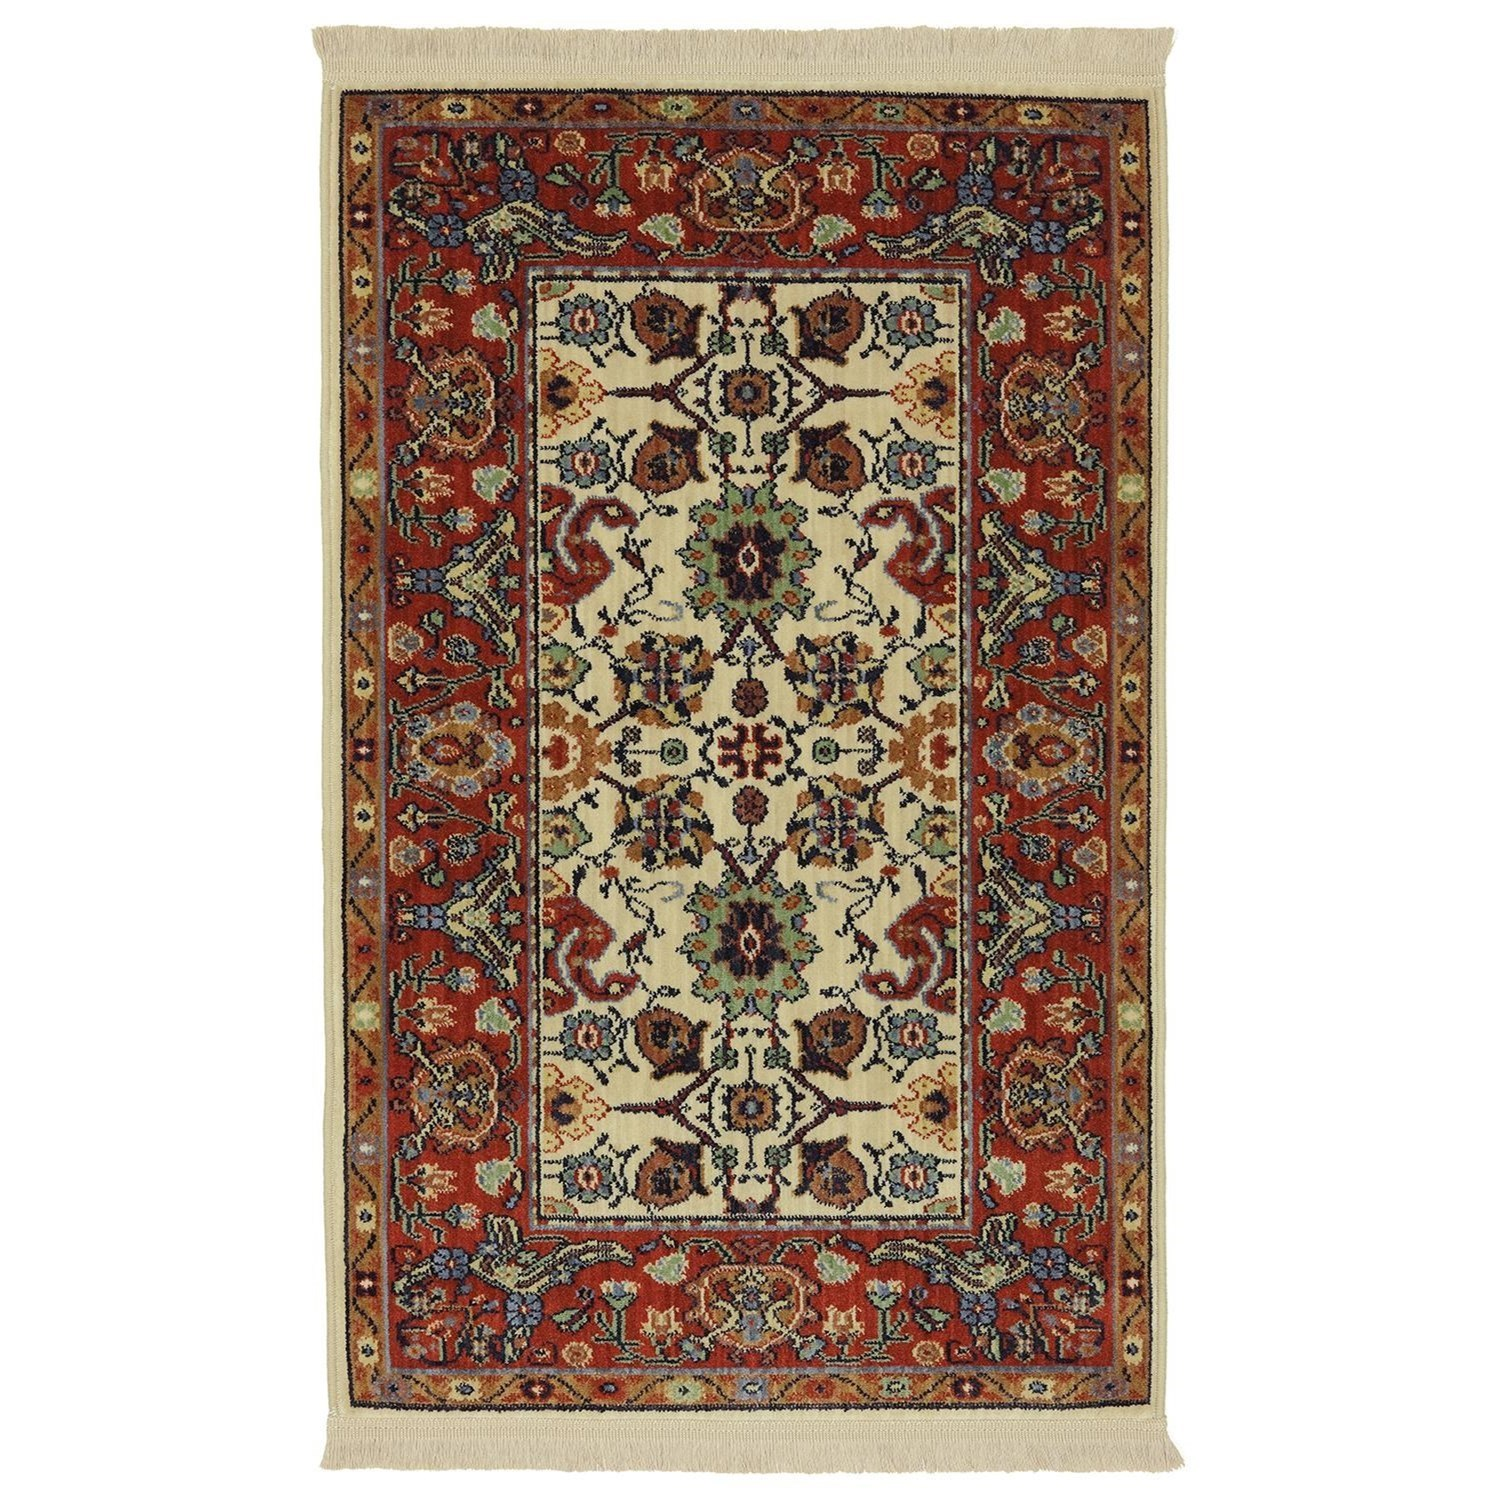 Karastan Rugs English Manor 2'6x4' Stratford Rug - Item Number: 02120 00505 030048